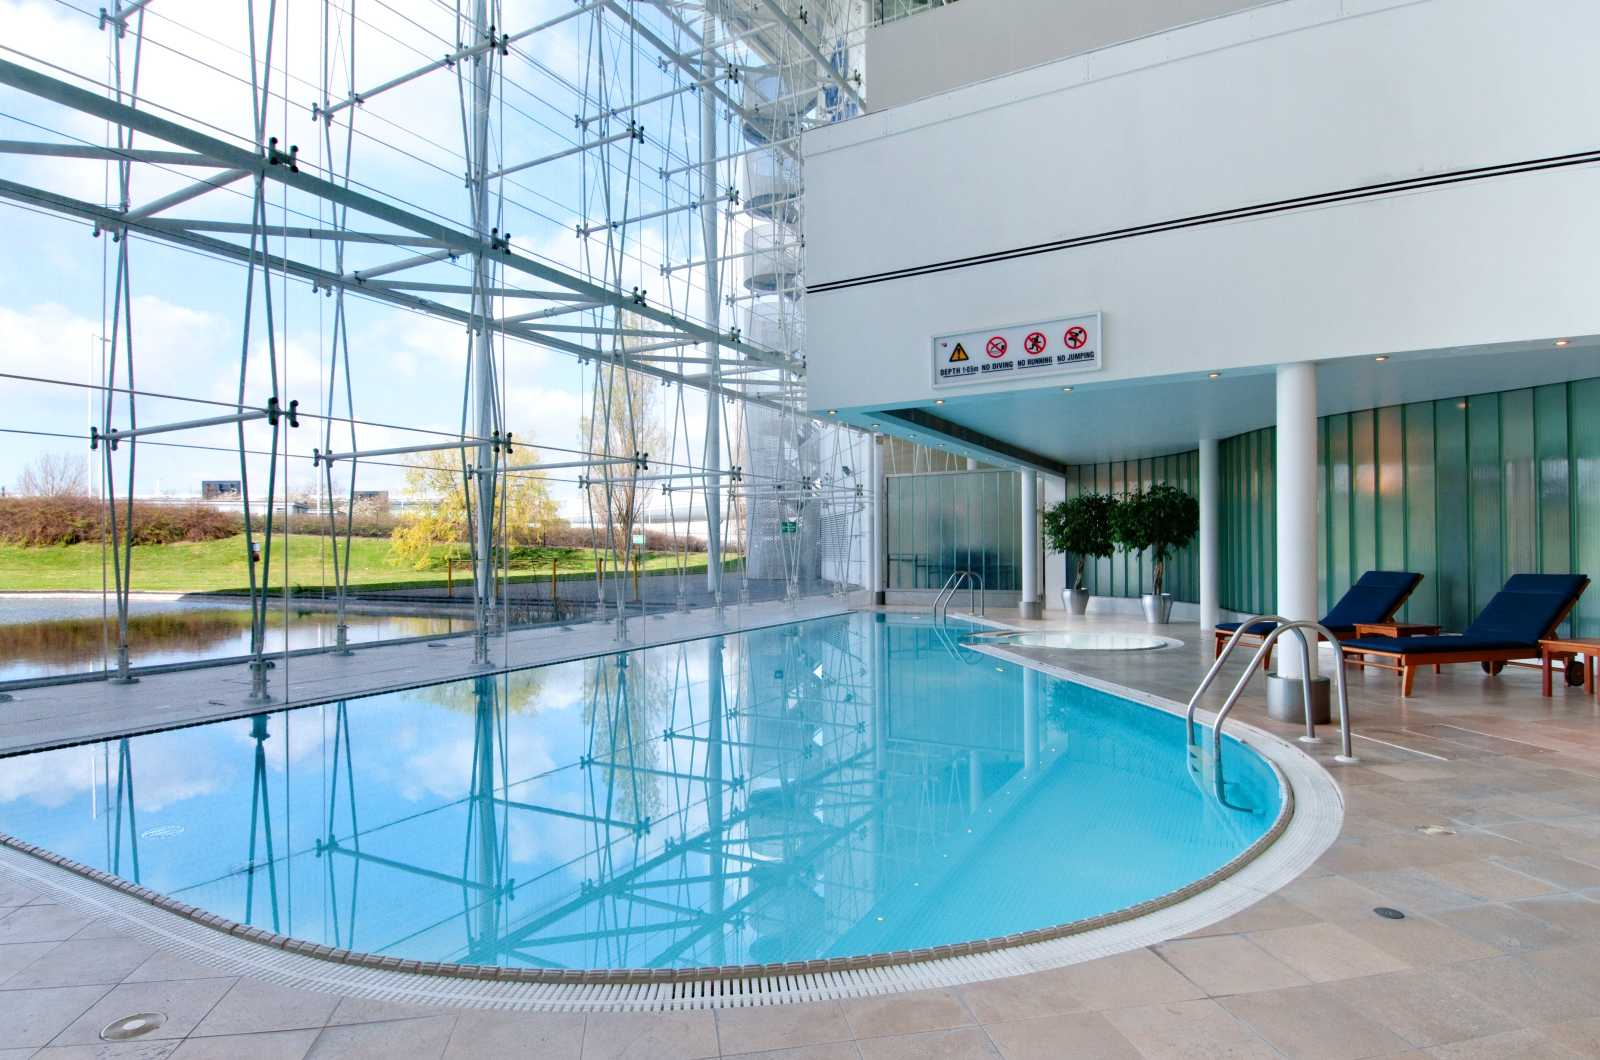 the hilton hotel heathrow Book hilton london heathrow airport hotel, london heathrow online get deal and discounts with lowest price on hotel booking check all guest reviews & photos of.